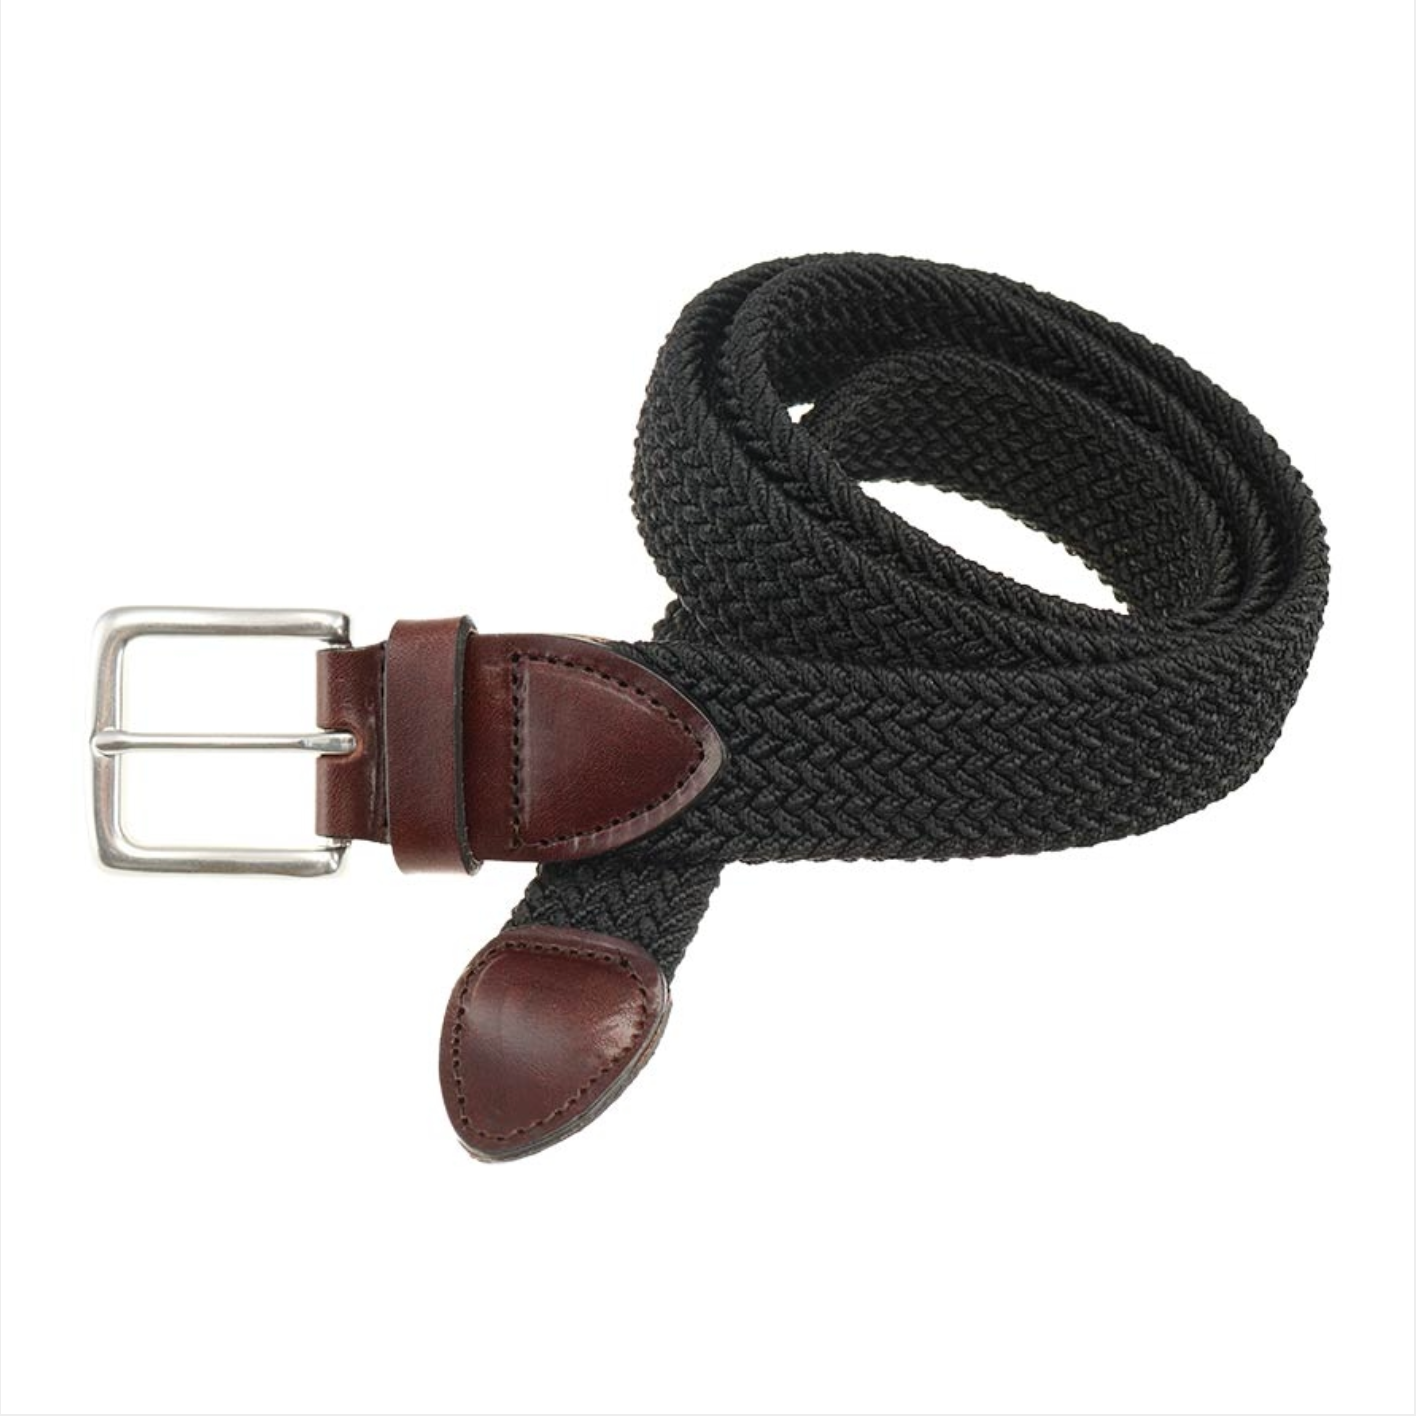 Crafted to add a rich style to any look, our Haspel x T.B. Phelps Collaboration, the Black Braided Belt features a Briar Waxy leather tab, antique nickel finish buckle, and four color choices of braided elastic.